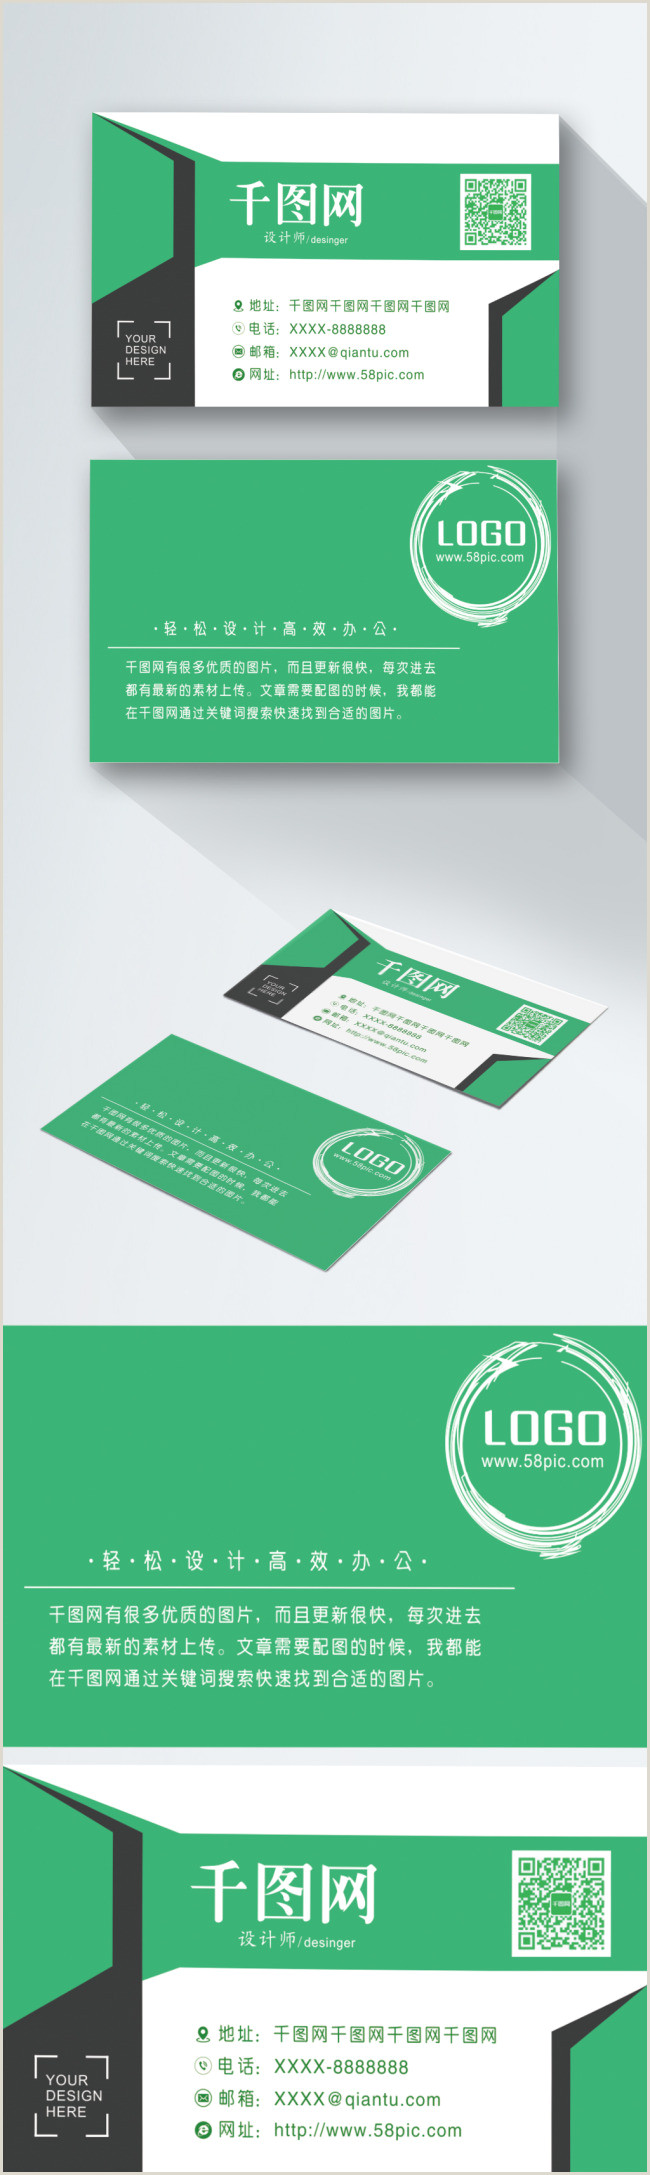 Business Card White Background Green Business Card Design On White Background Template